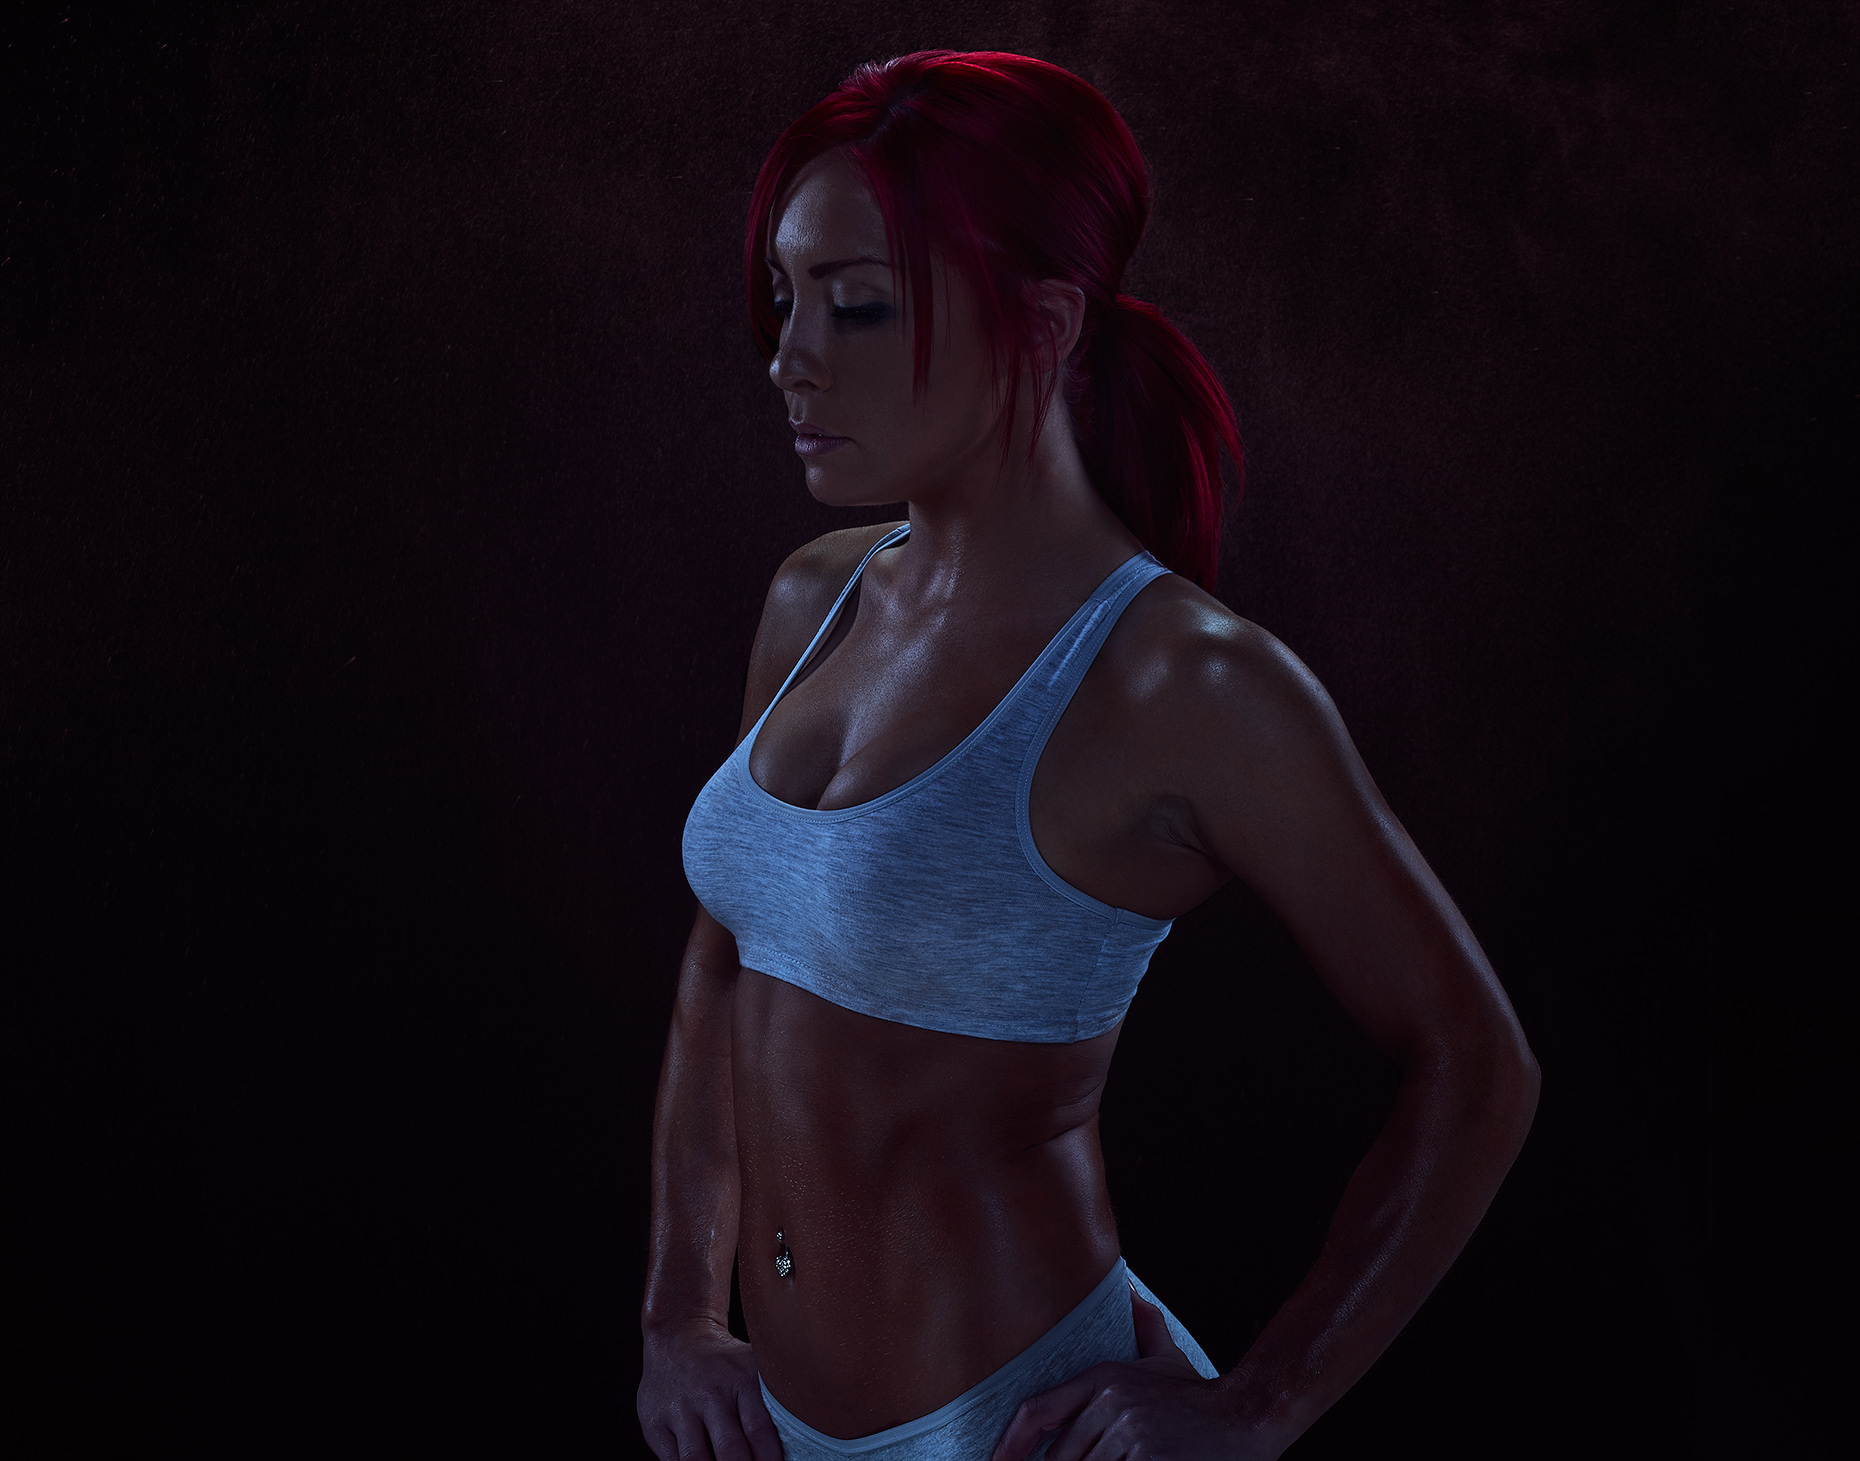 portrait of crossfit athlete cool down by brian kaldorf